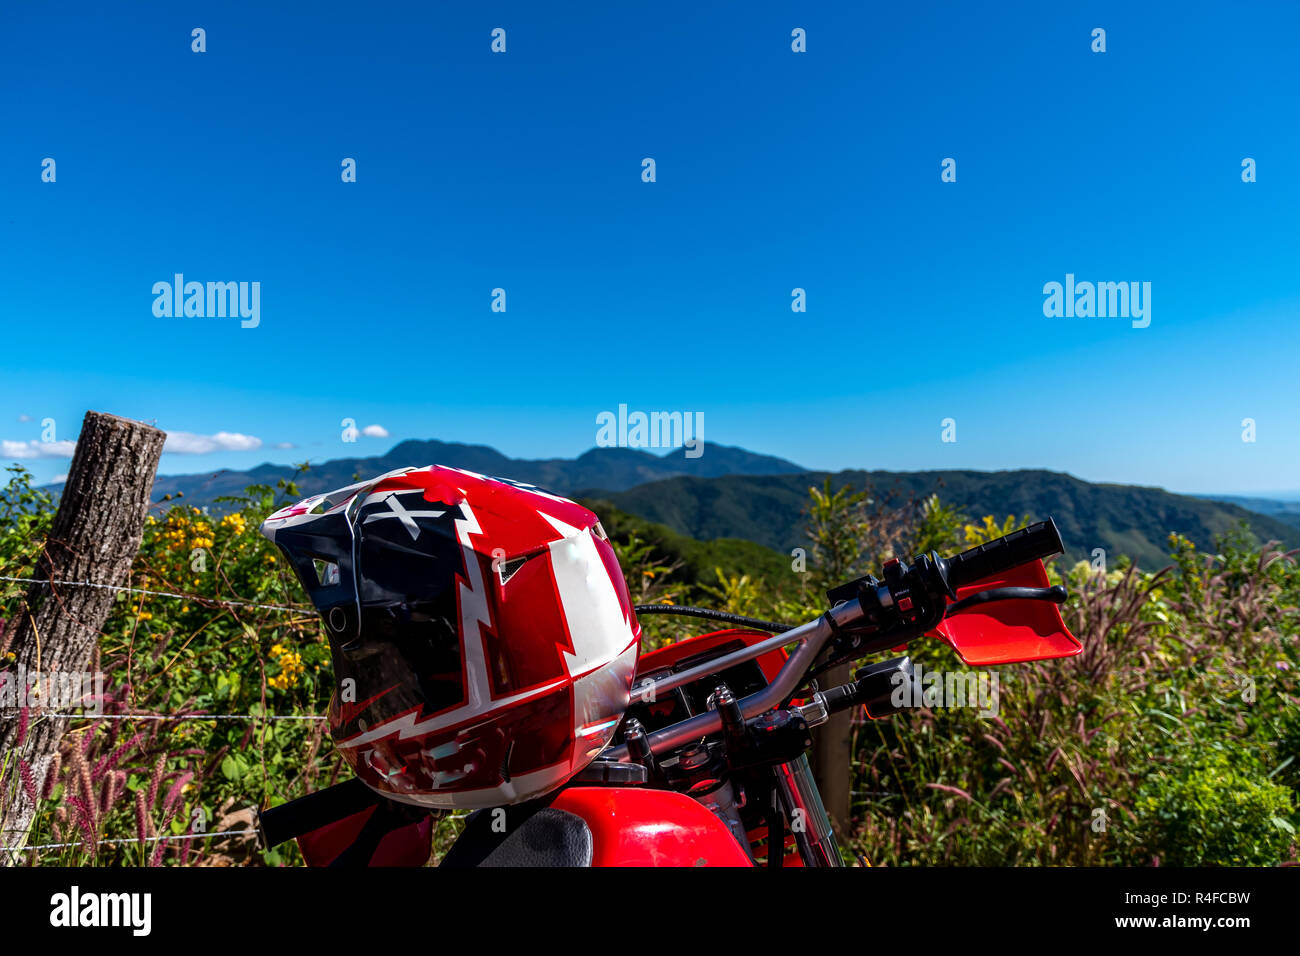 red dirt bike motorcycle and view of Guatemalan mountains landscape - Stock Image